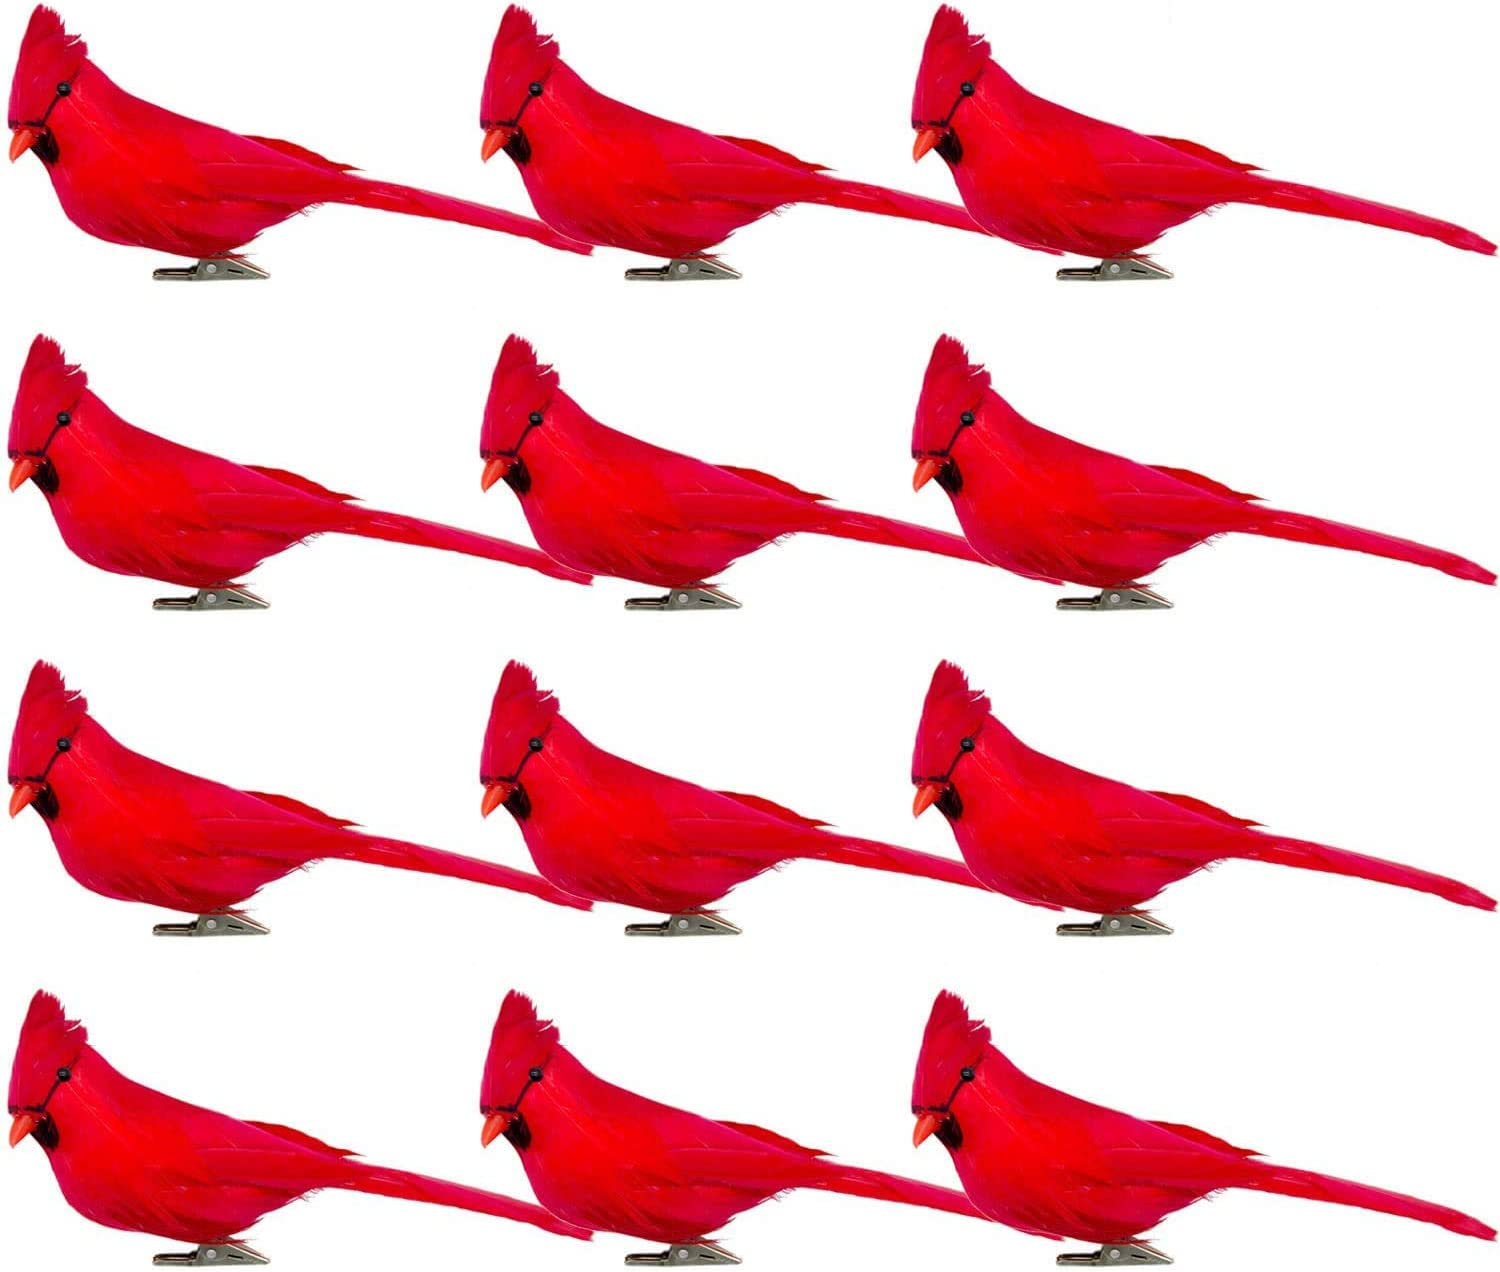 Alpurple 12 PCS Inch Artificial Red Cardinal Birds Clip-Christmas Cardinal Birds Clip for Christmas Tree Ornament Decorations, Arts and Crafts